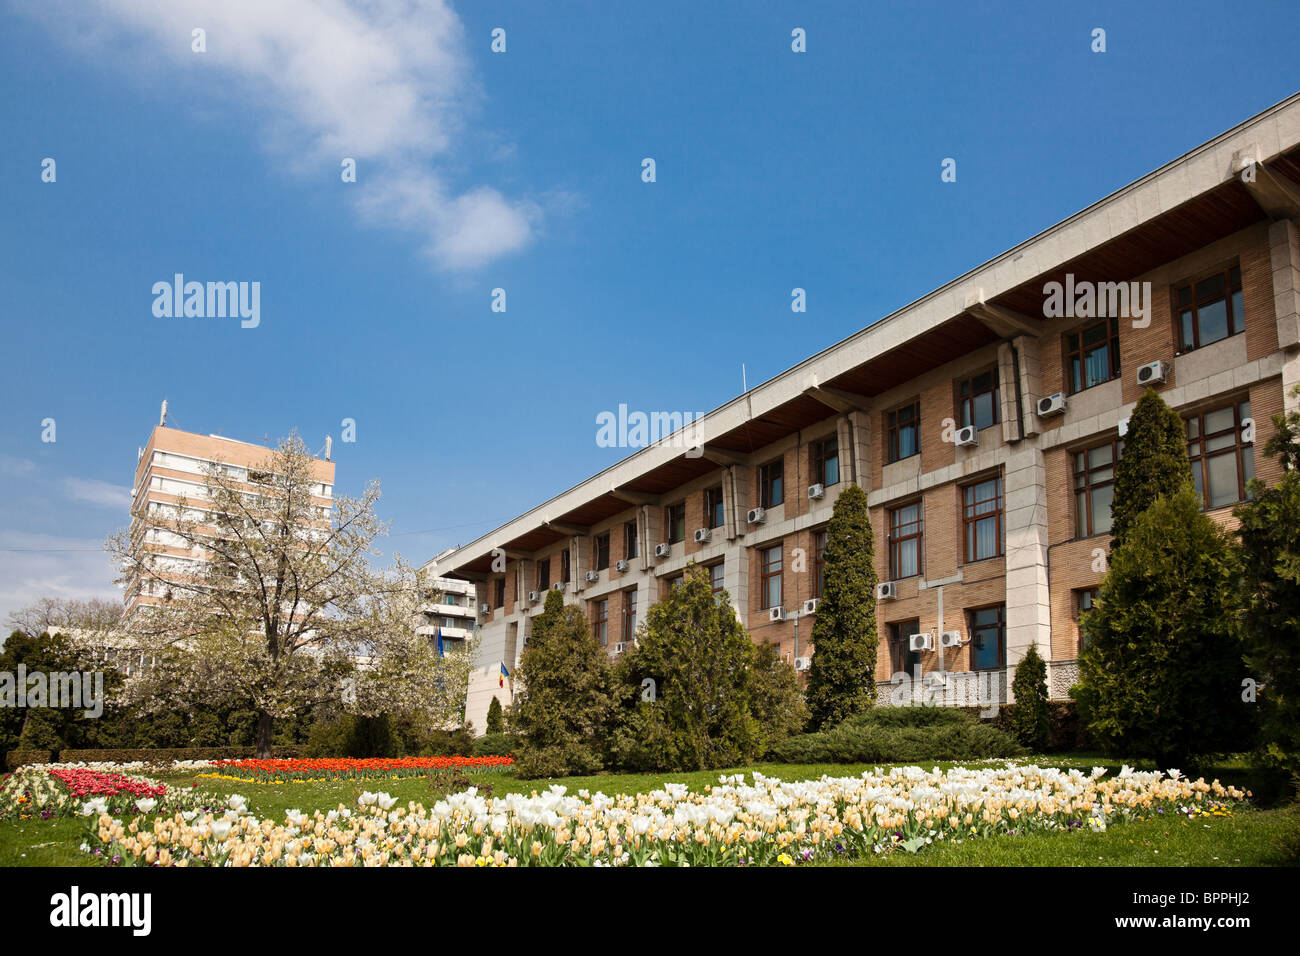 The Prefecture building in Iasi city, Romania, in spring. - Stock Image